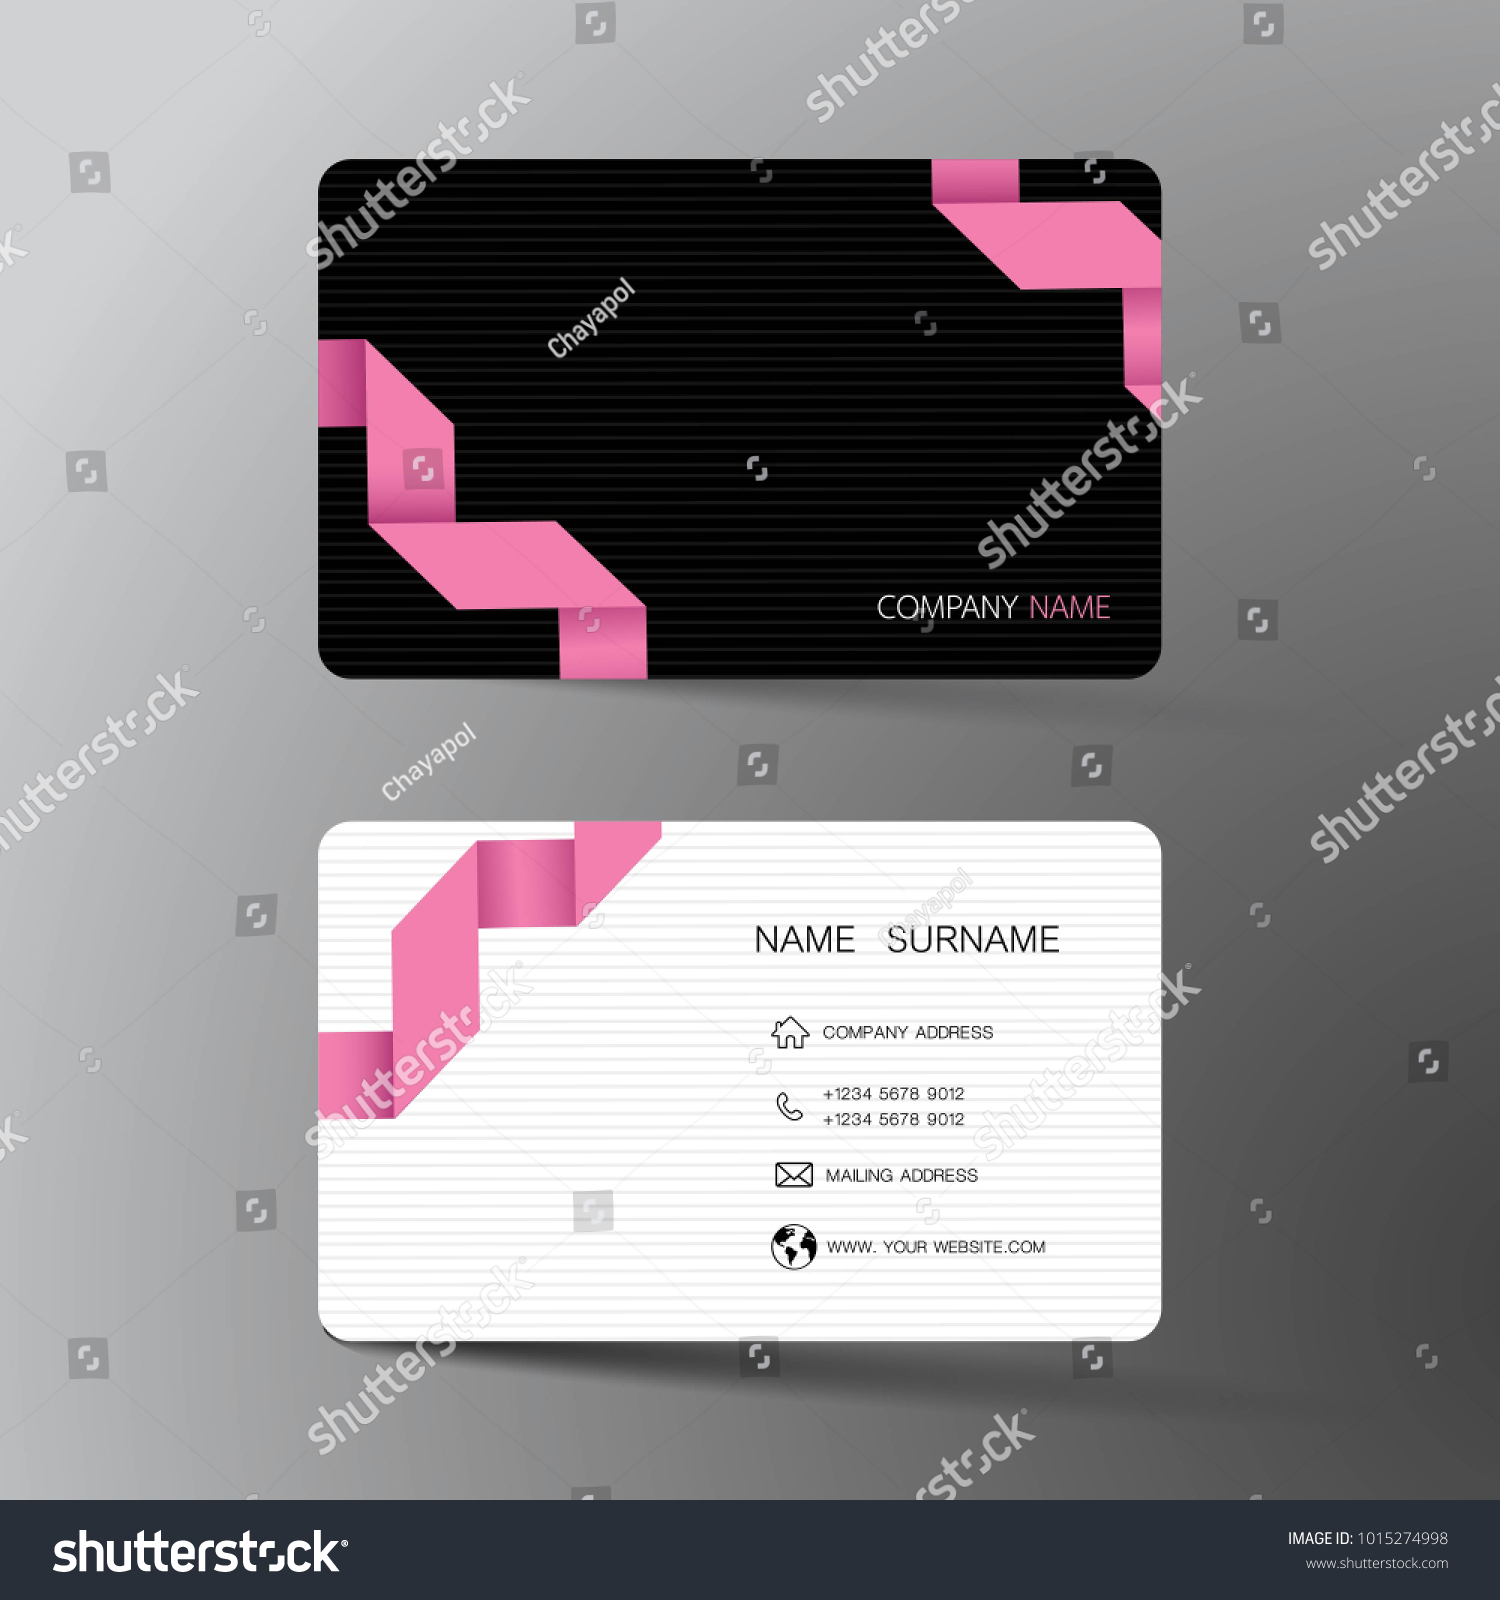 Pink Black Business Card Template Design Stock Vector HD (Royalty ...